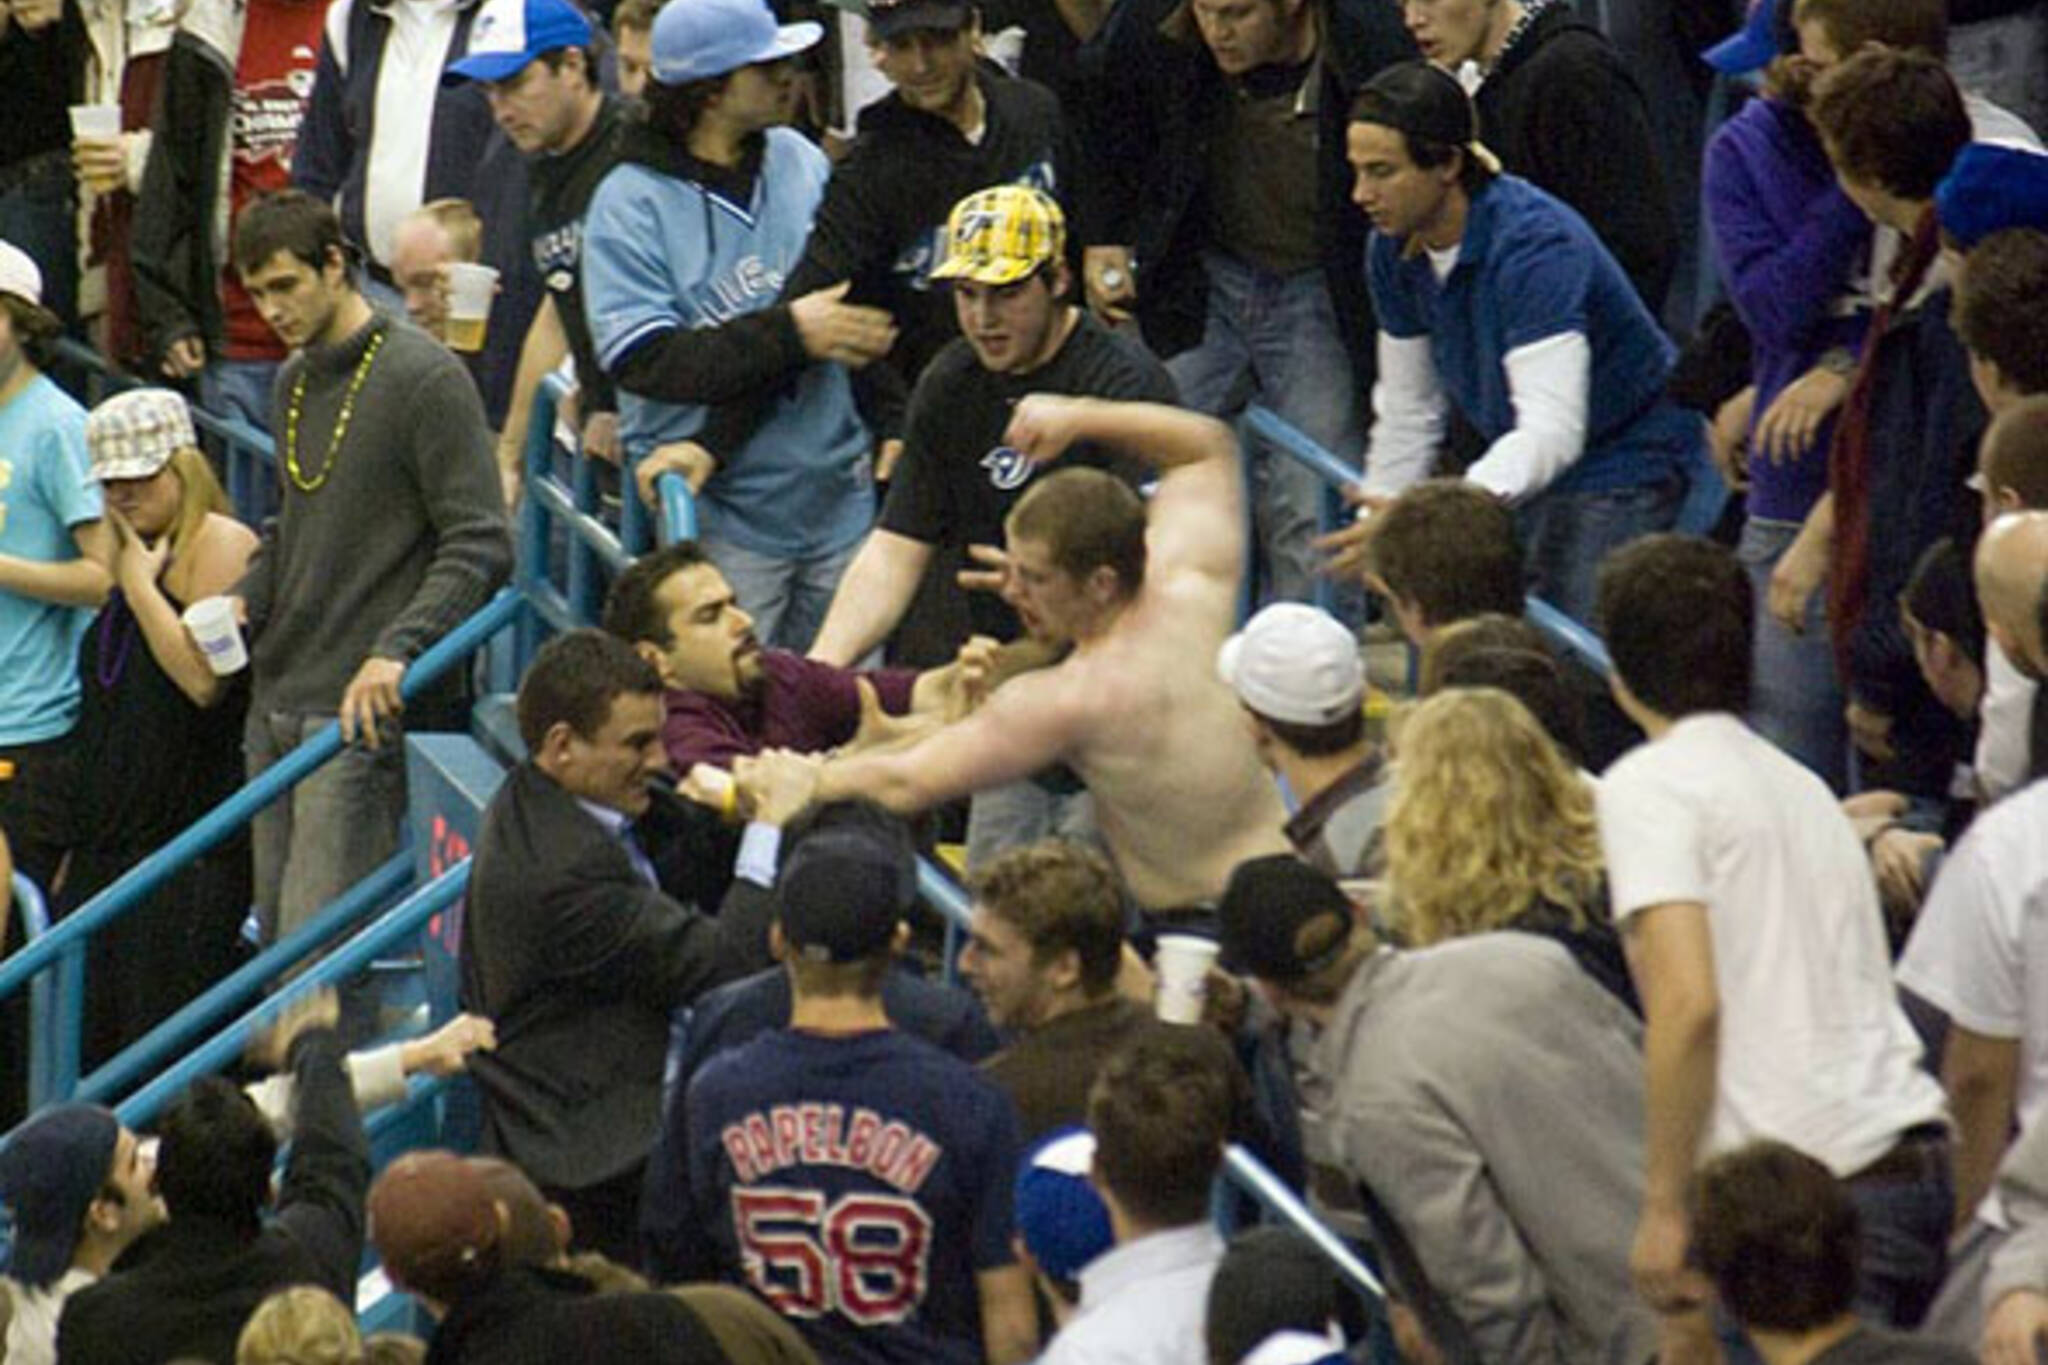 Fans fight on Opening Day at the Rogers Centre